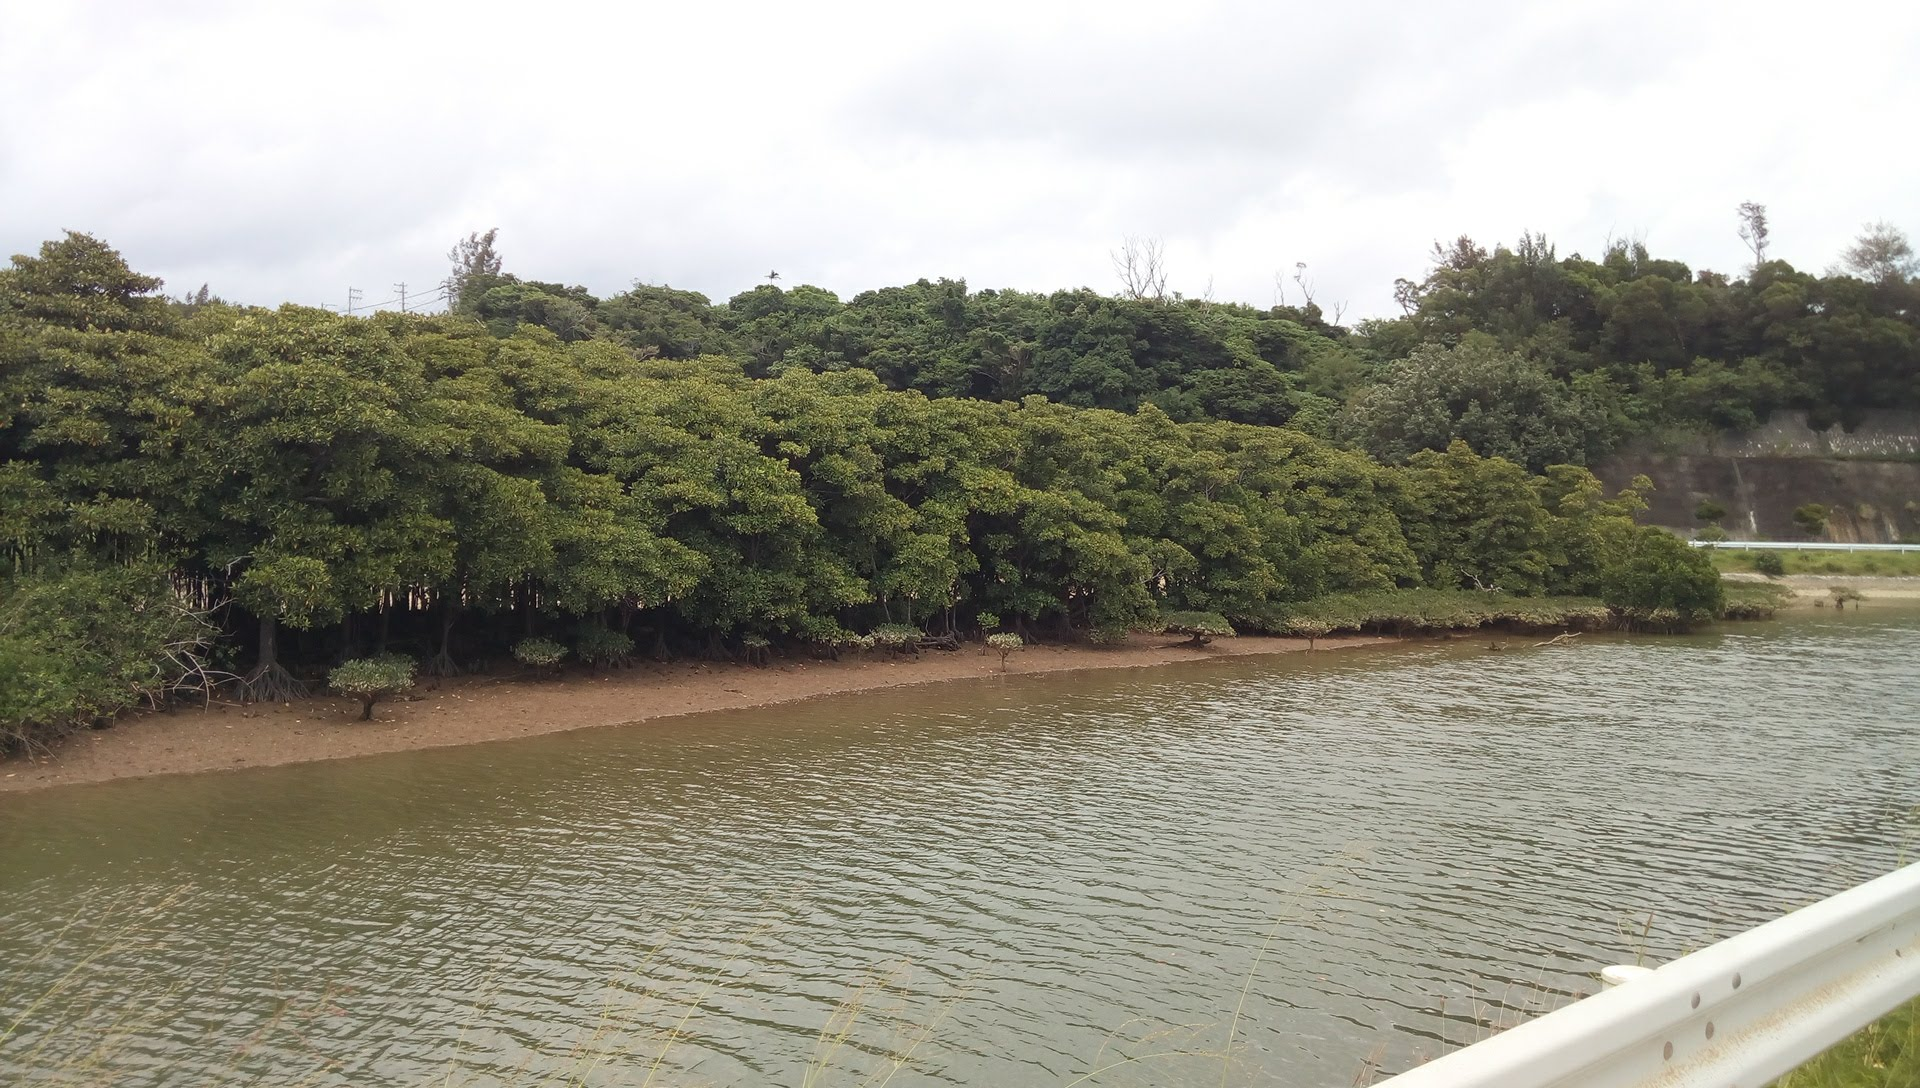 mangrove forest in the river in front of the Tamaya